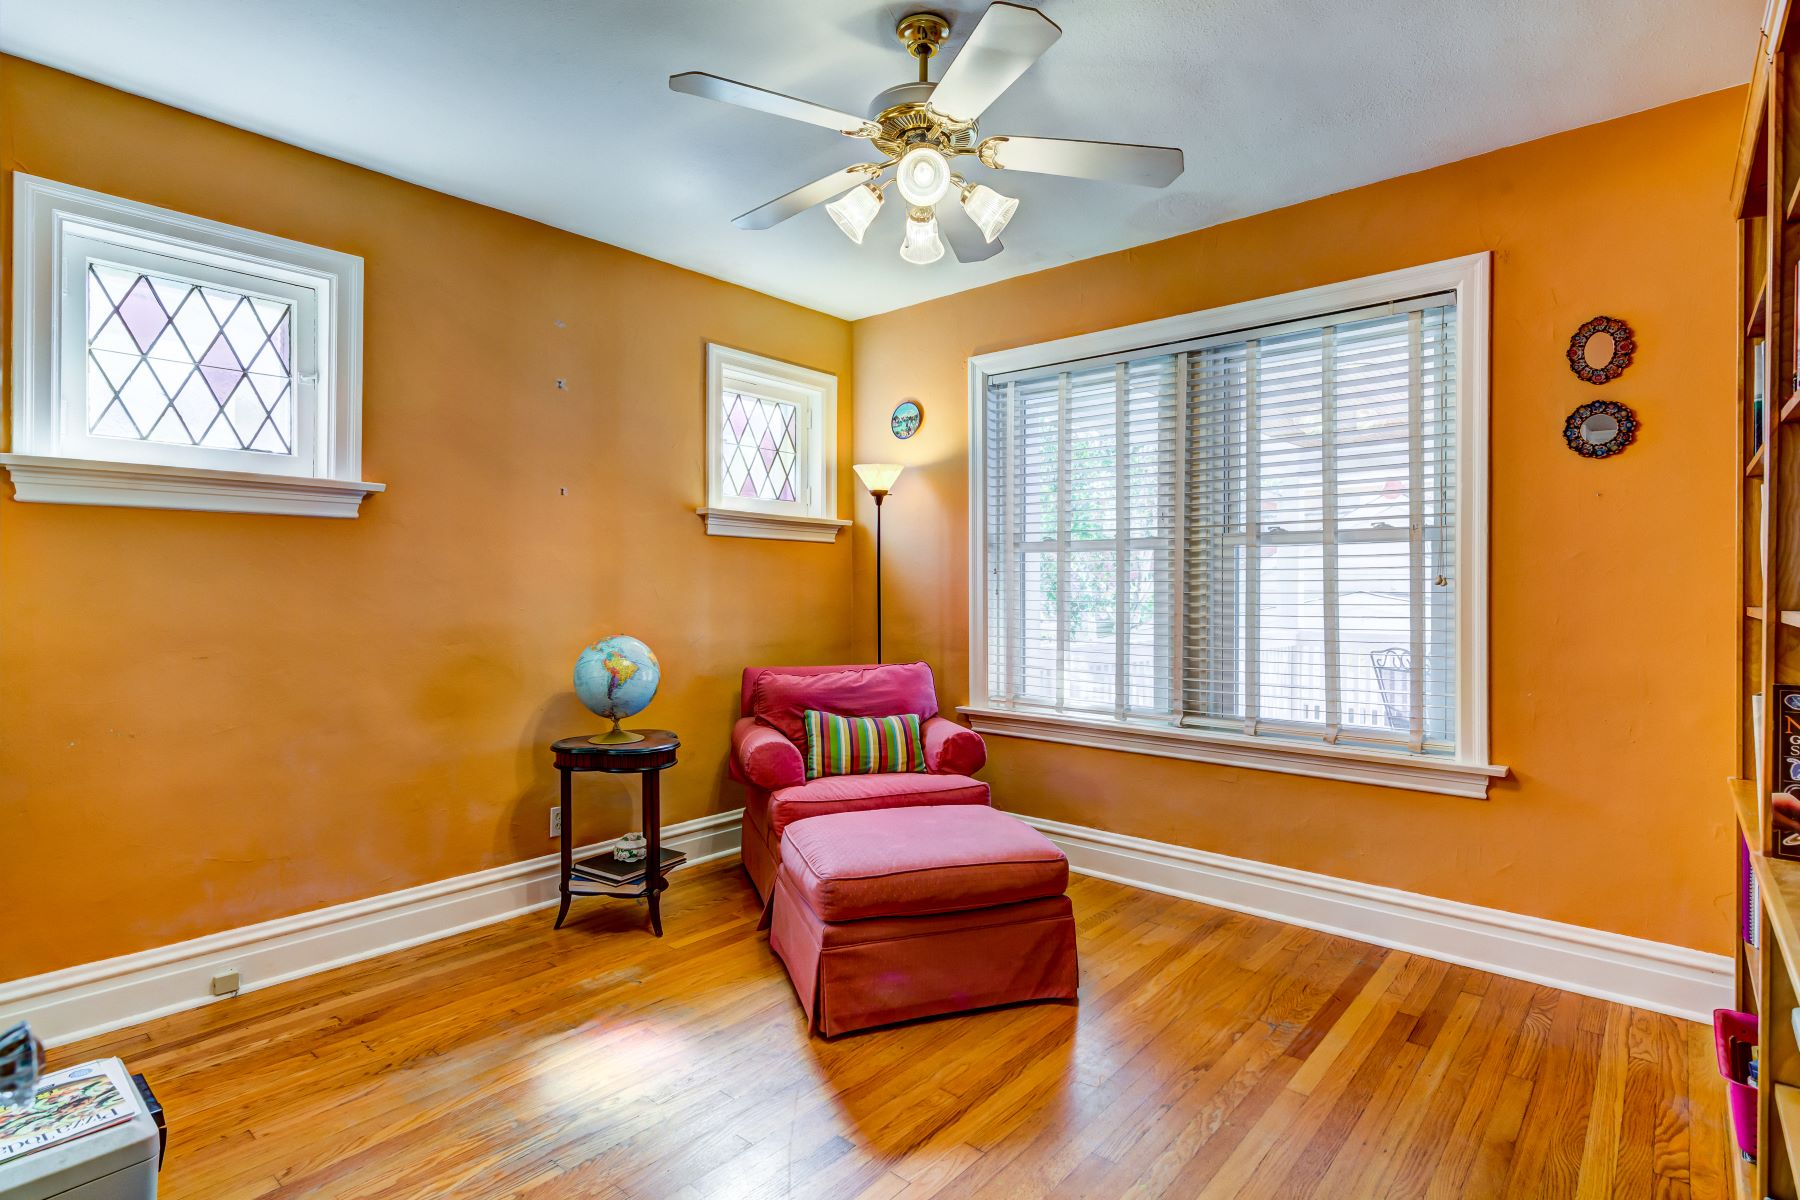 Additional photo for property listing at Lindenwood Park Charmer 6320 Mardel Avenue St. Louis, Missouri 63109 United States